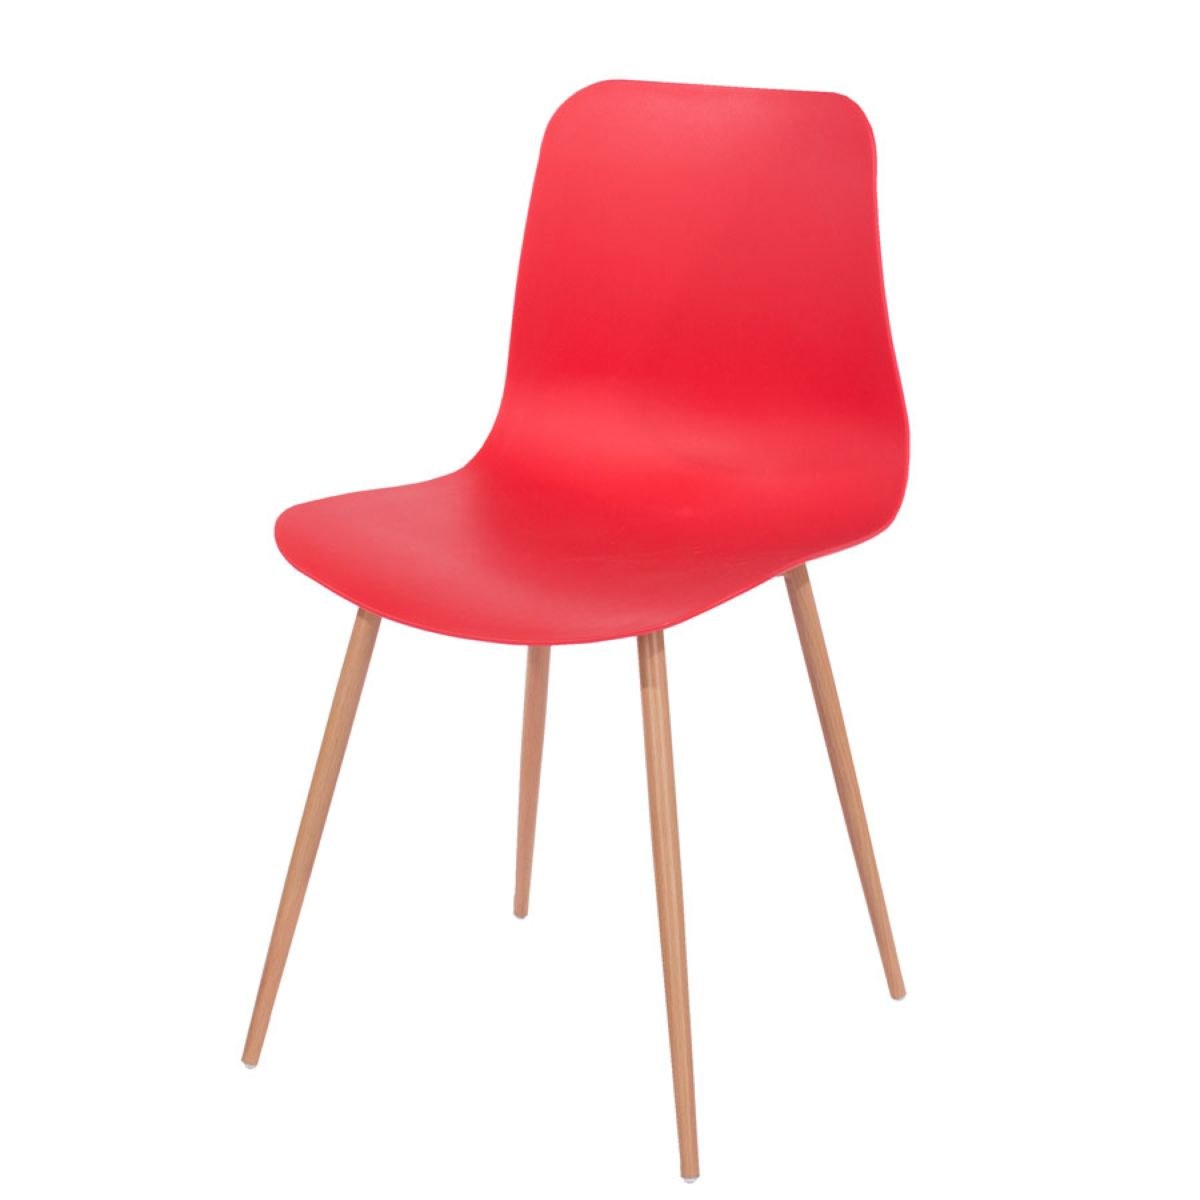 Roloku Pair of Plastic Chairs with Wood-Effect Legs - Red